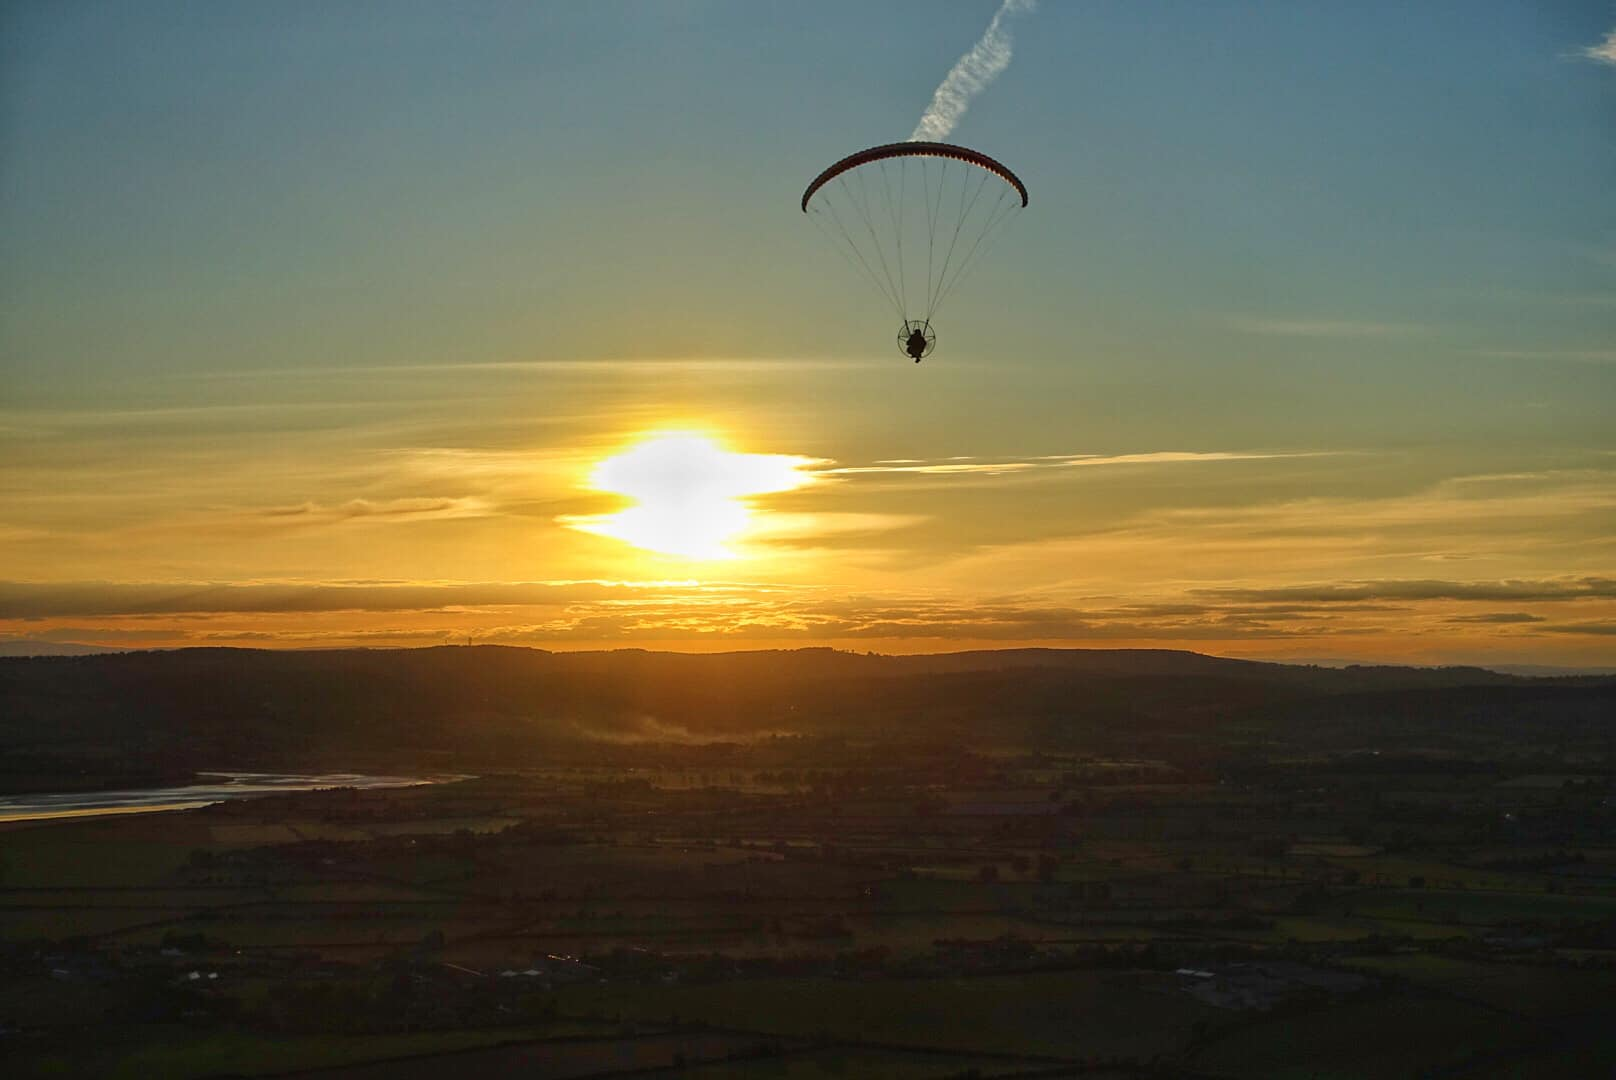 Sunset paramotoring on 30 May 2020. Photo: Wayne Seeley